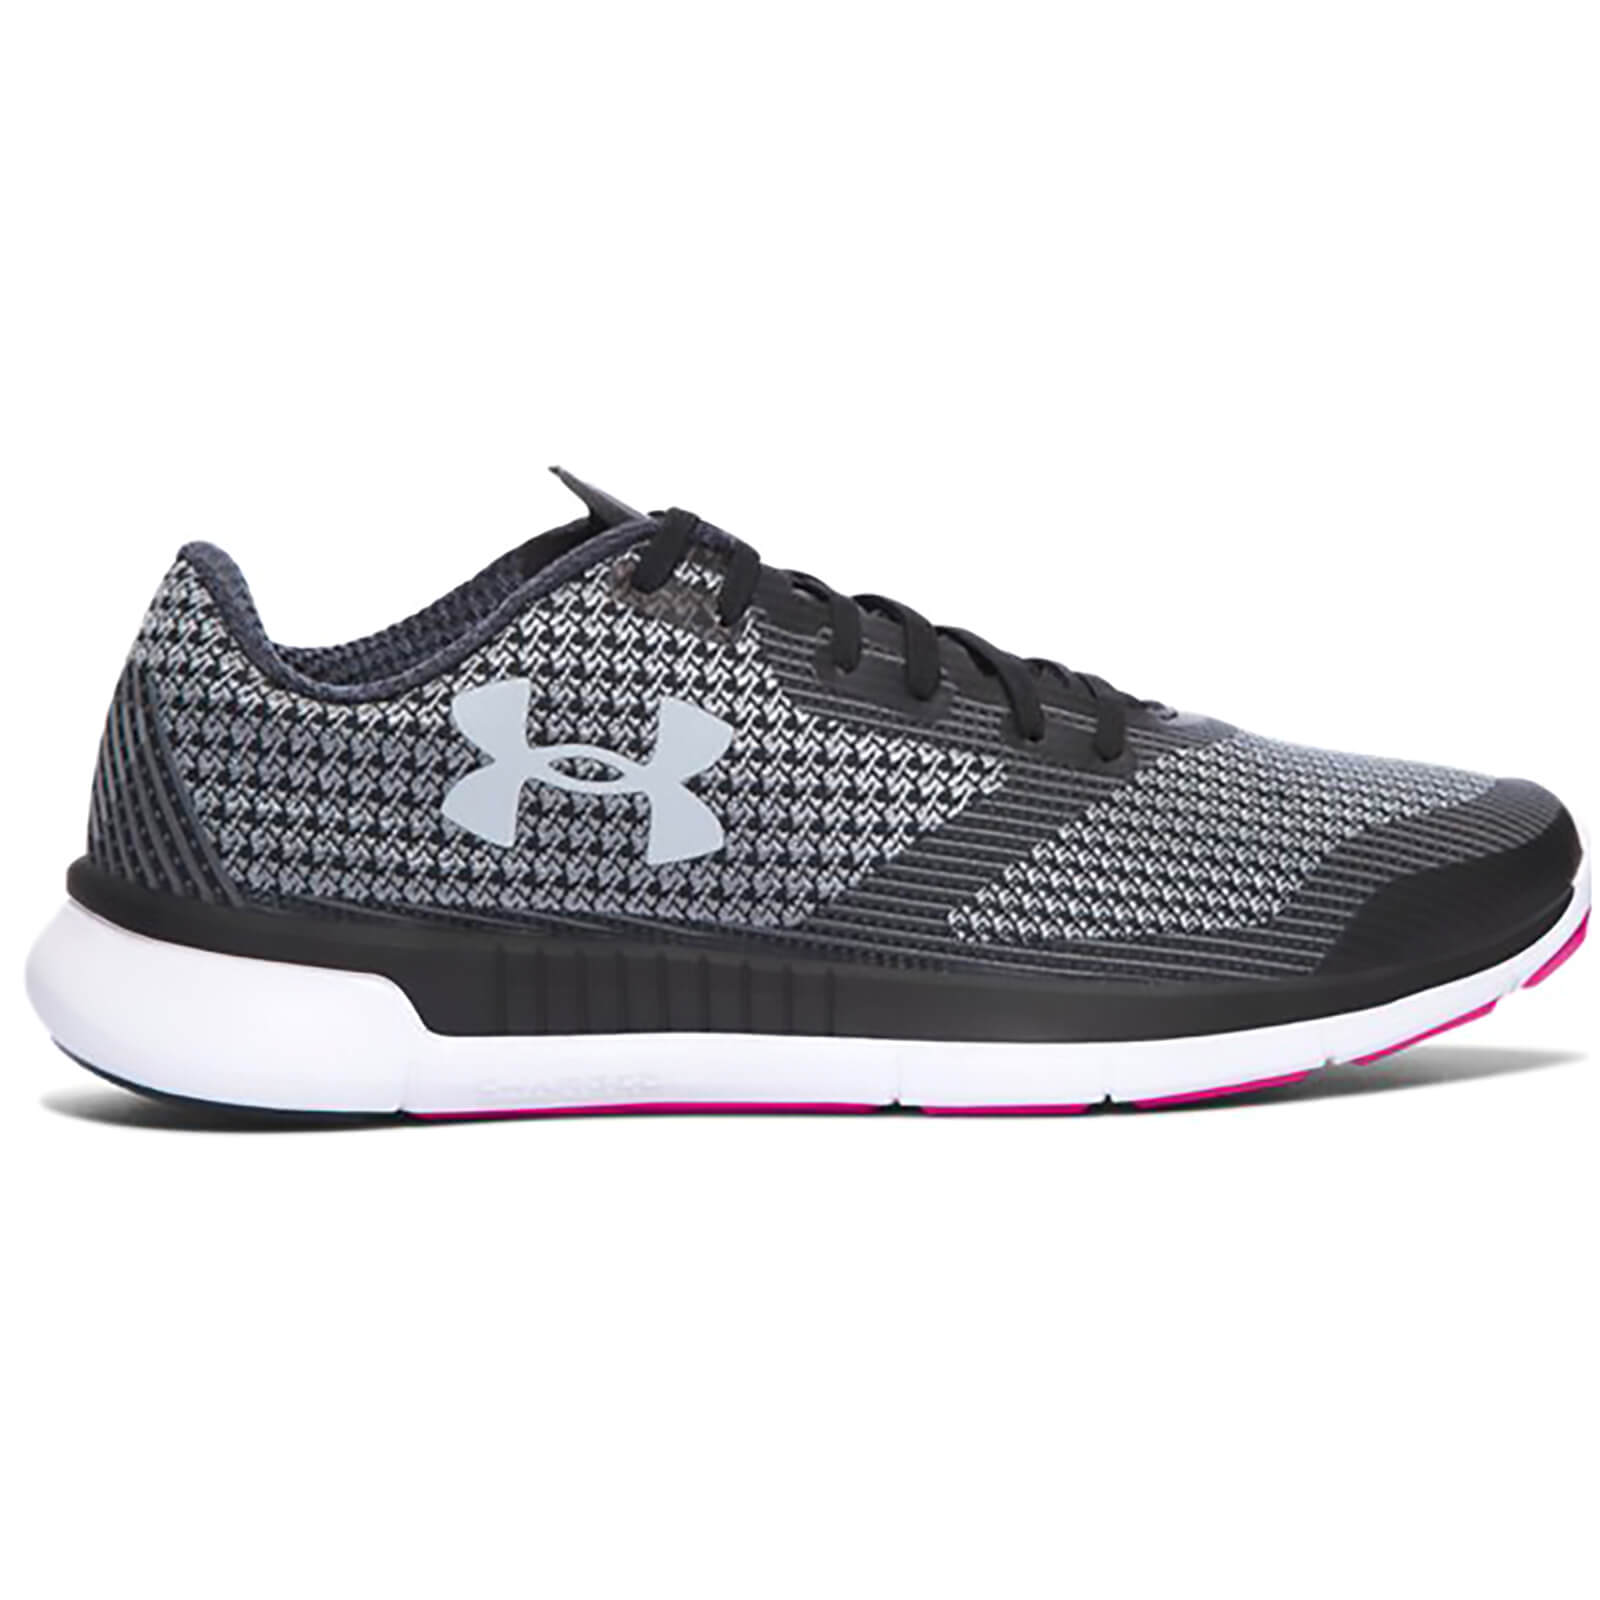 Womens Under Armour Charged Lightning Shoes